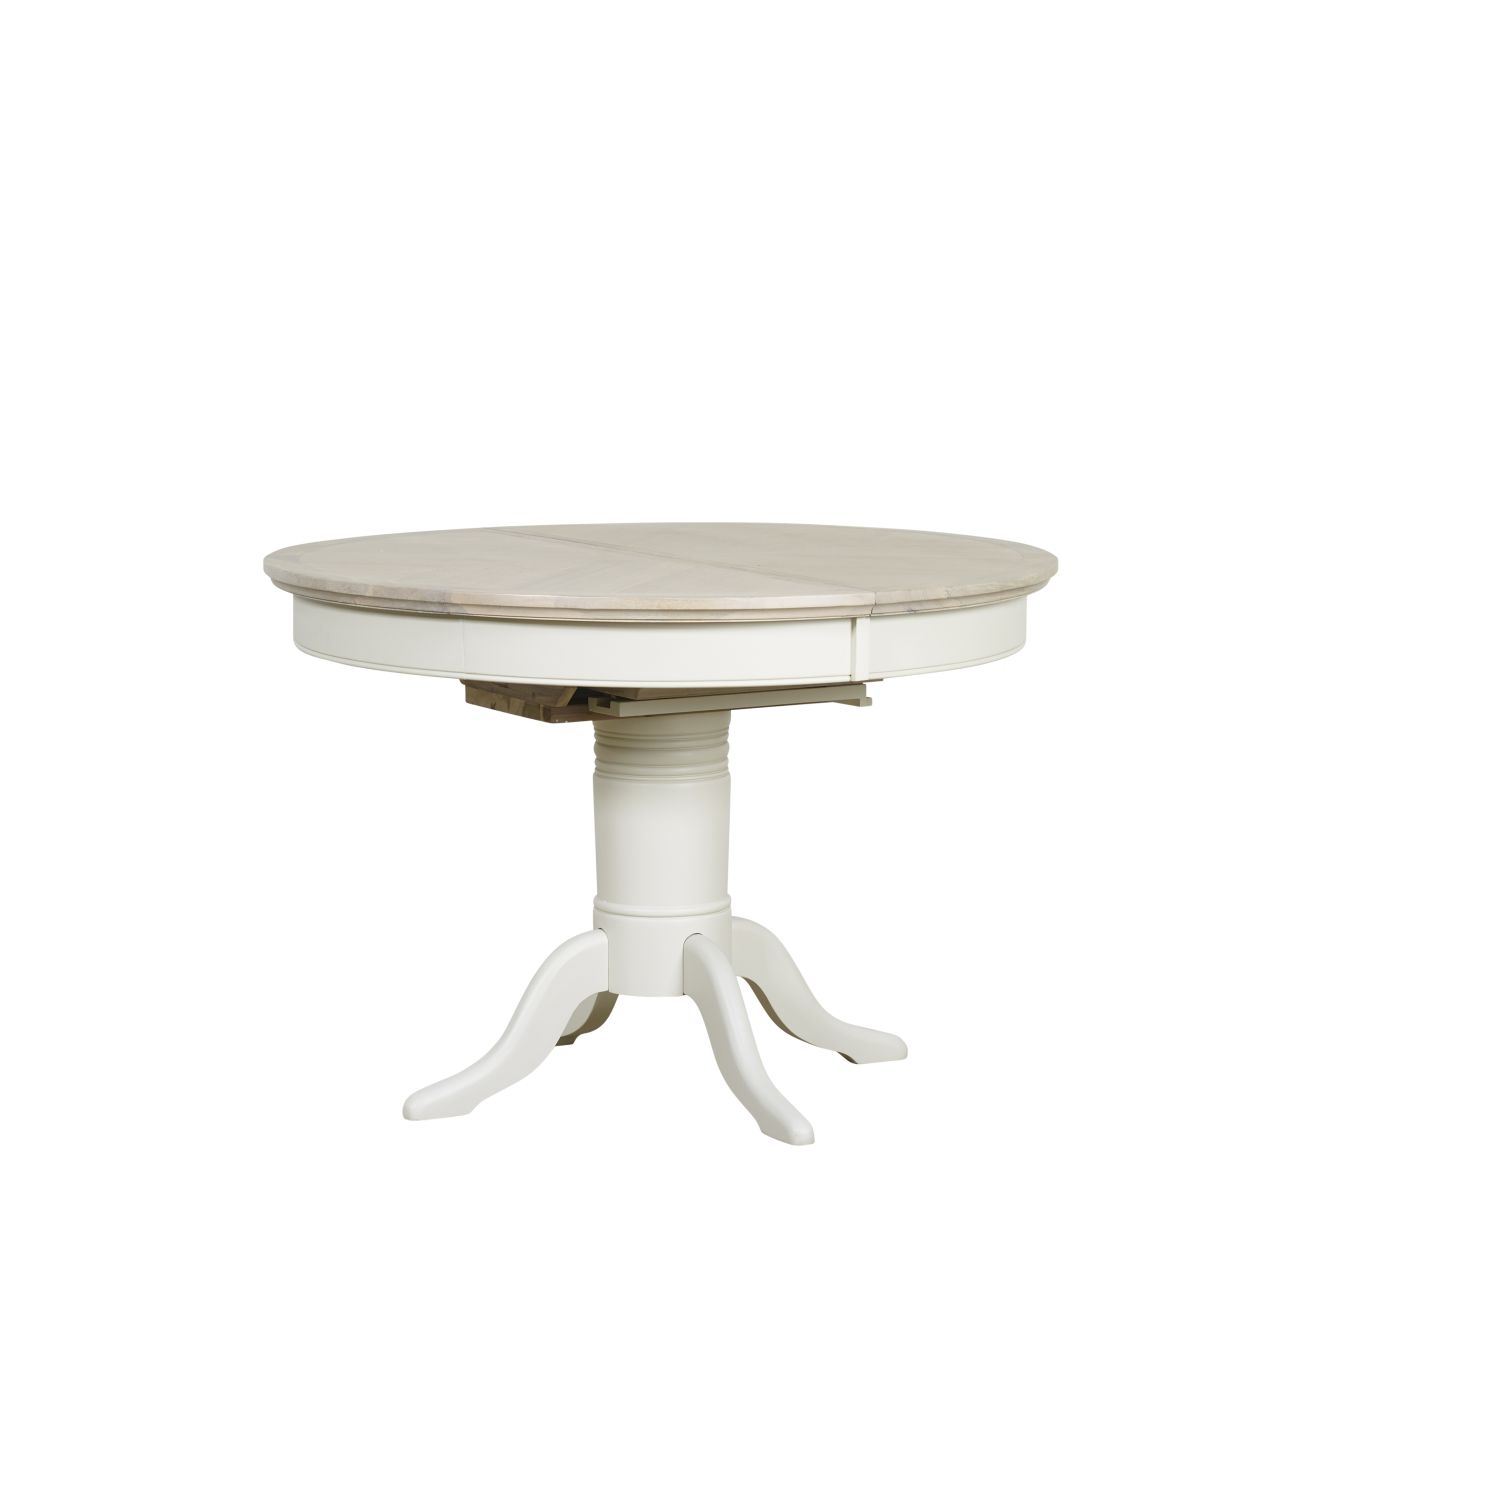 Image of Casa Lille Round Extending Dining Table